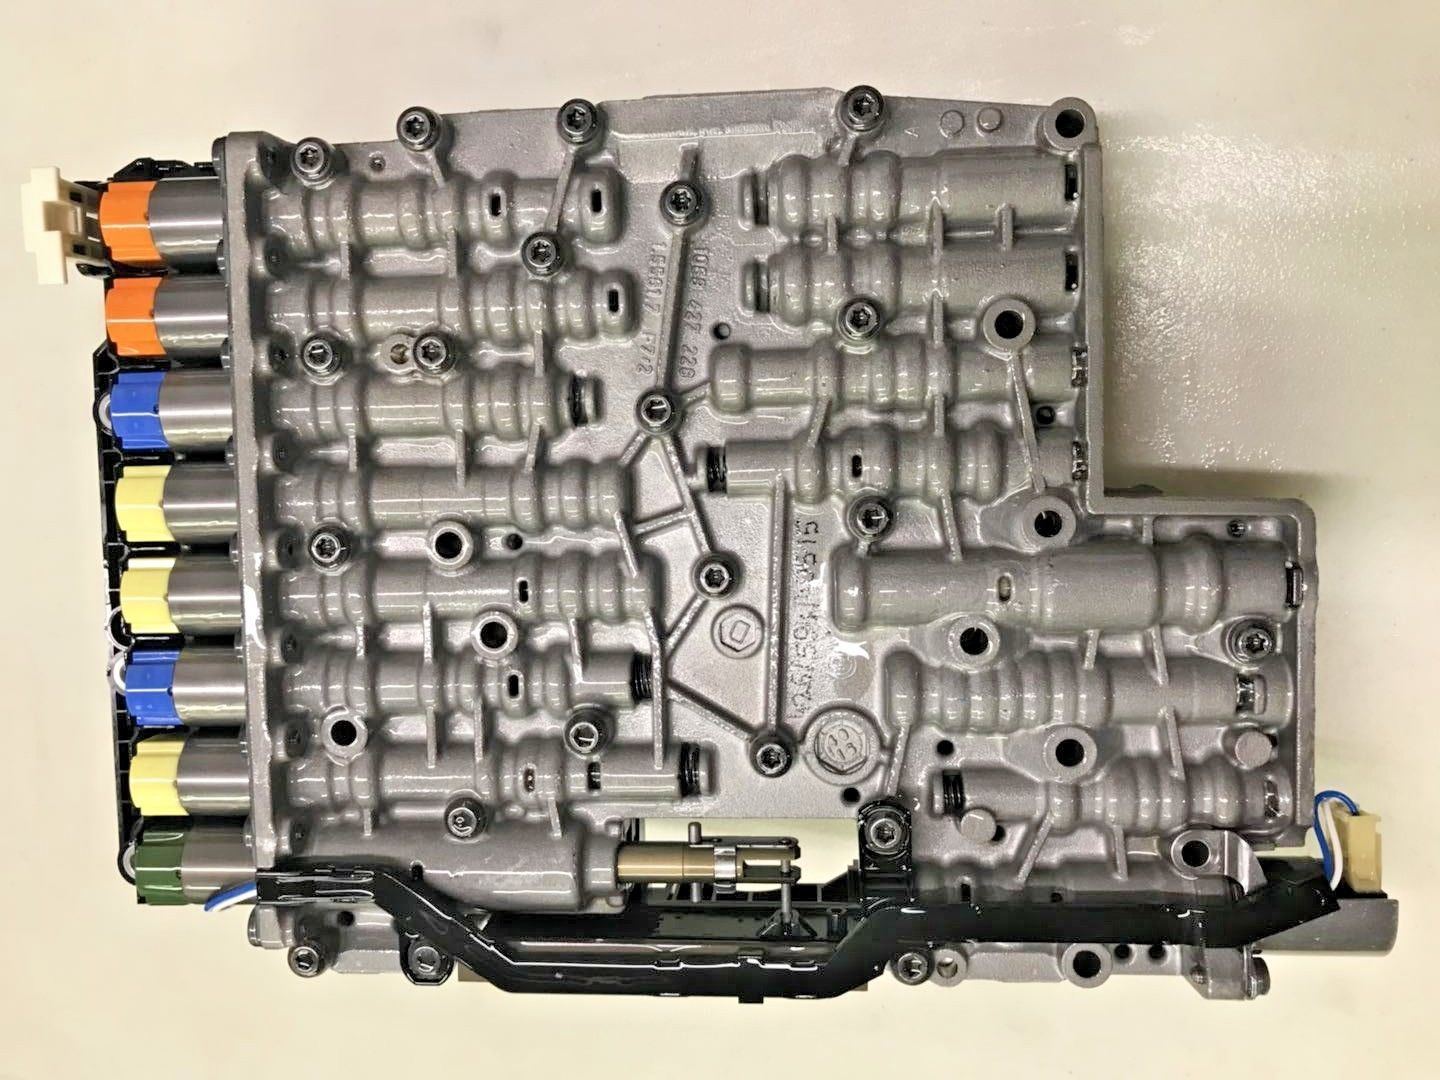 NEW OEM 6HP26 6HP28 6HP32 ZF Trans Mechatronic 1068 198 426 For BMW 750 F01